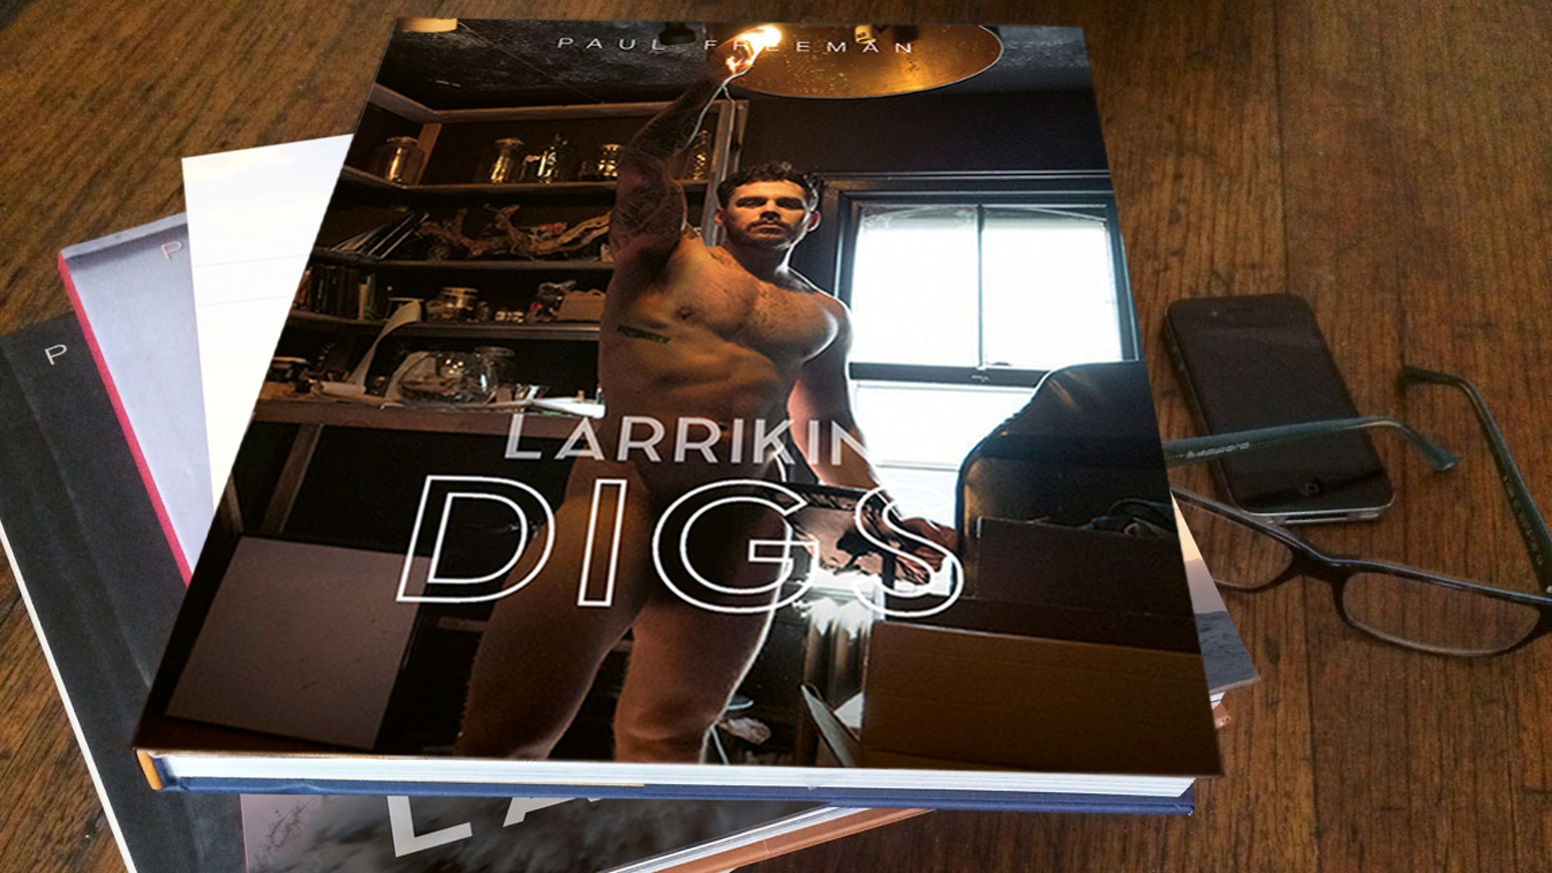 I'm publishing and distributing two new books of male nudes and portraits, LARRIKIN DIGS and LARRIKIN LADS, continuing this book series